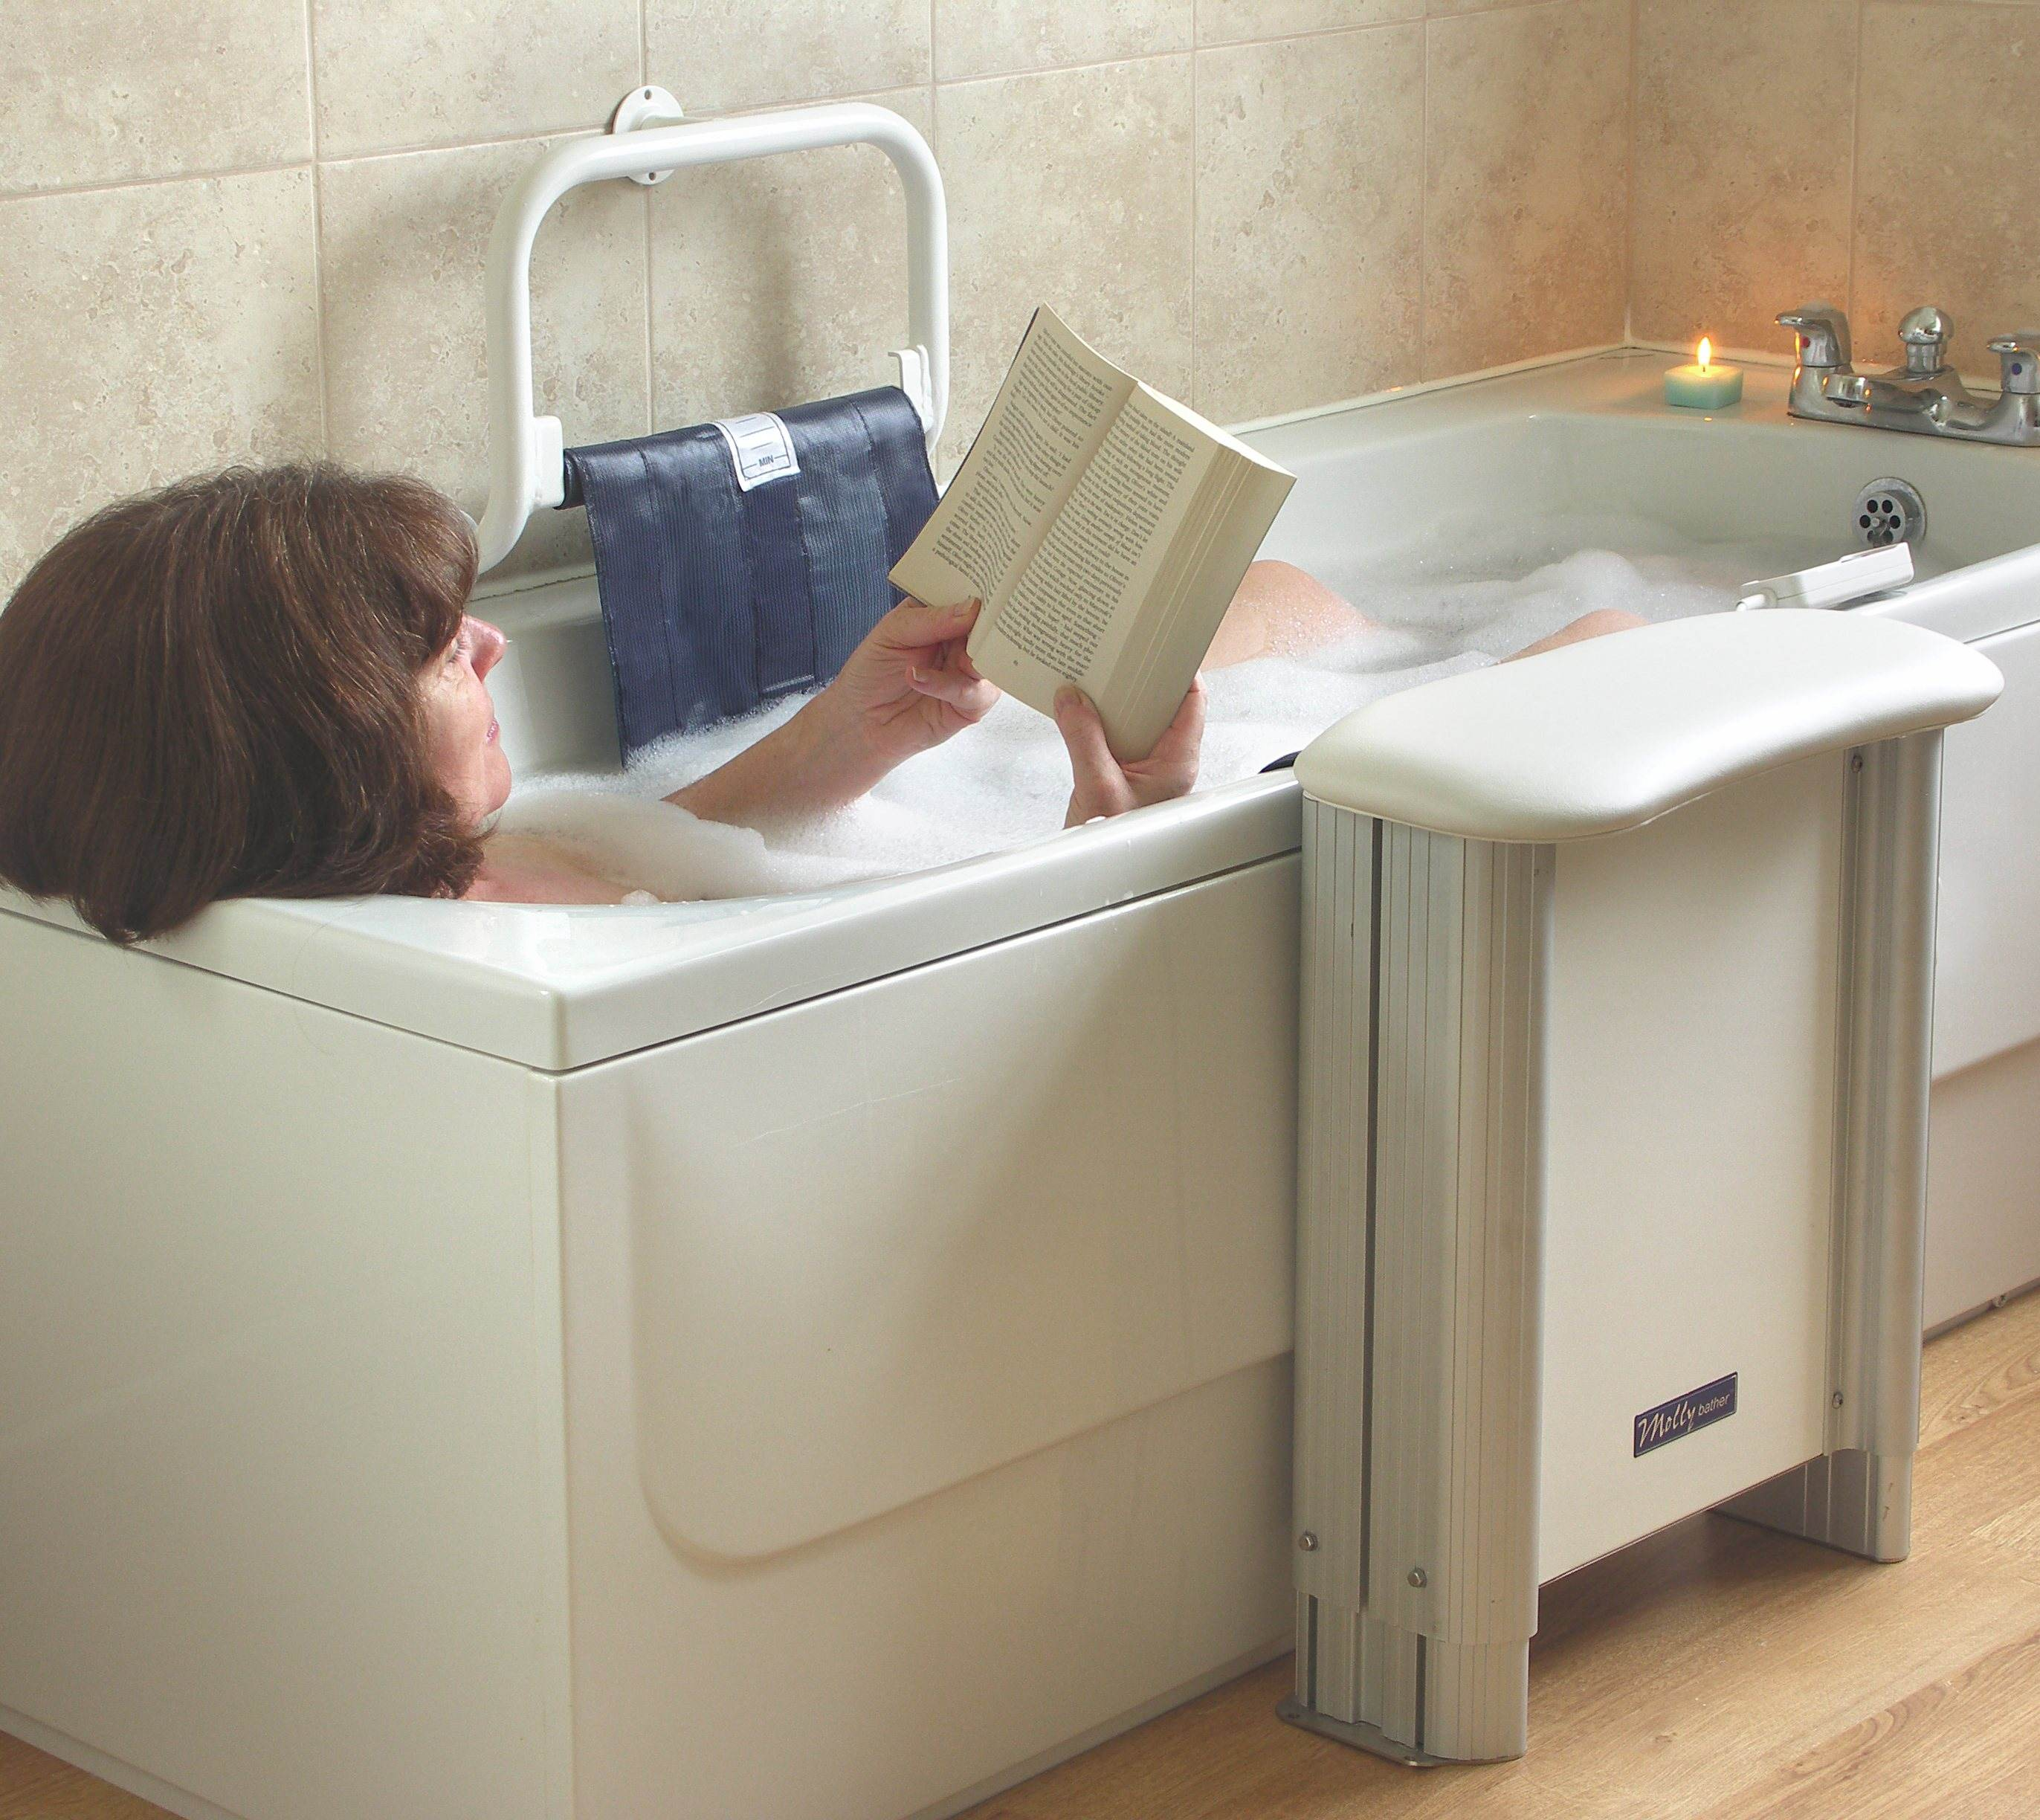 Molly Bather Bath Lift - Living made easy